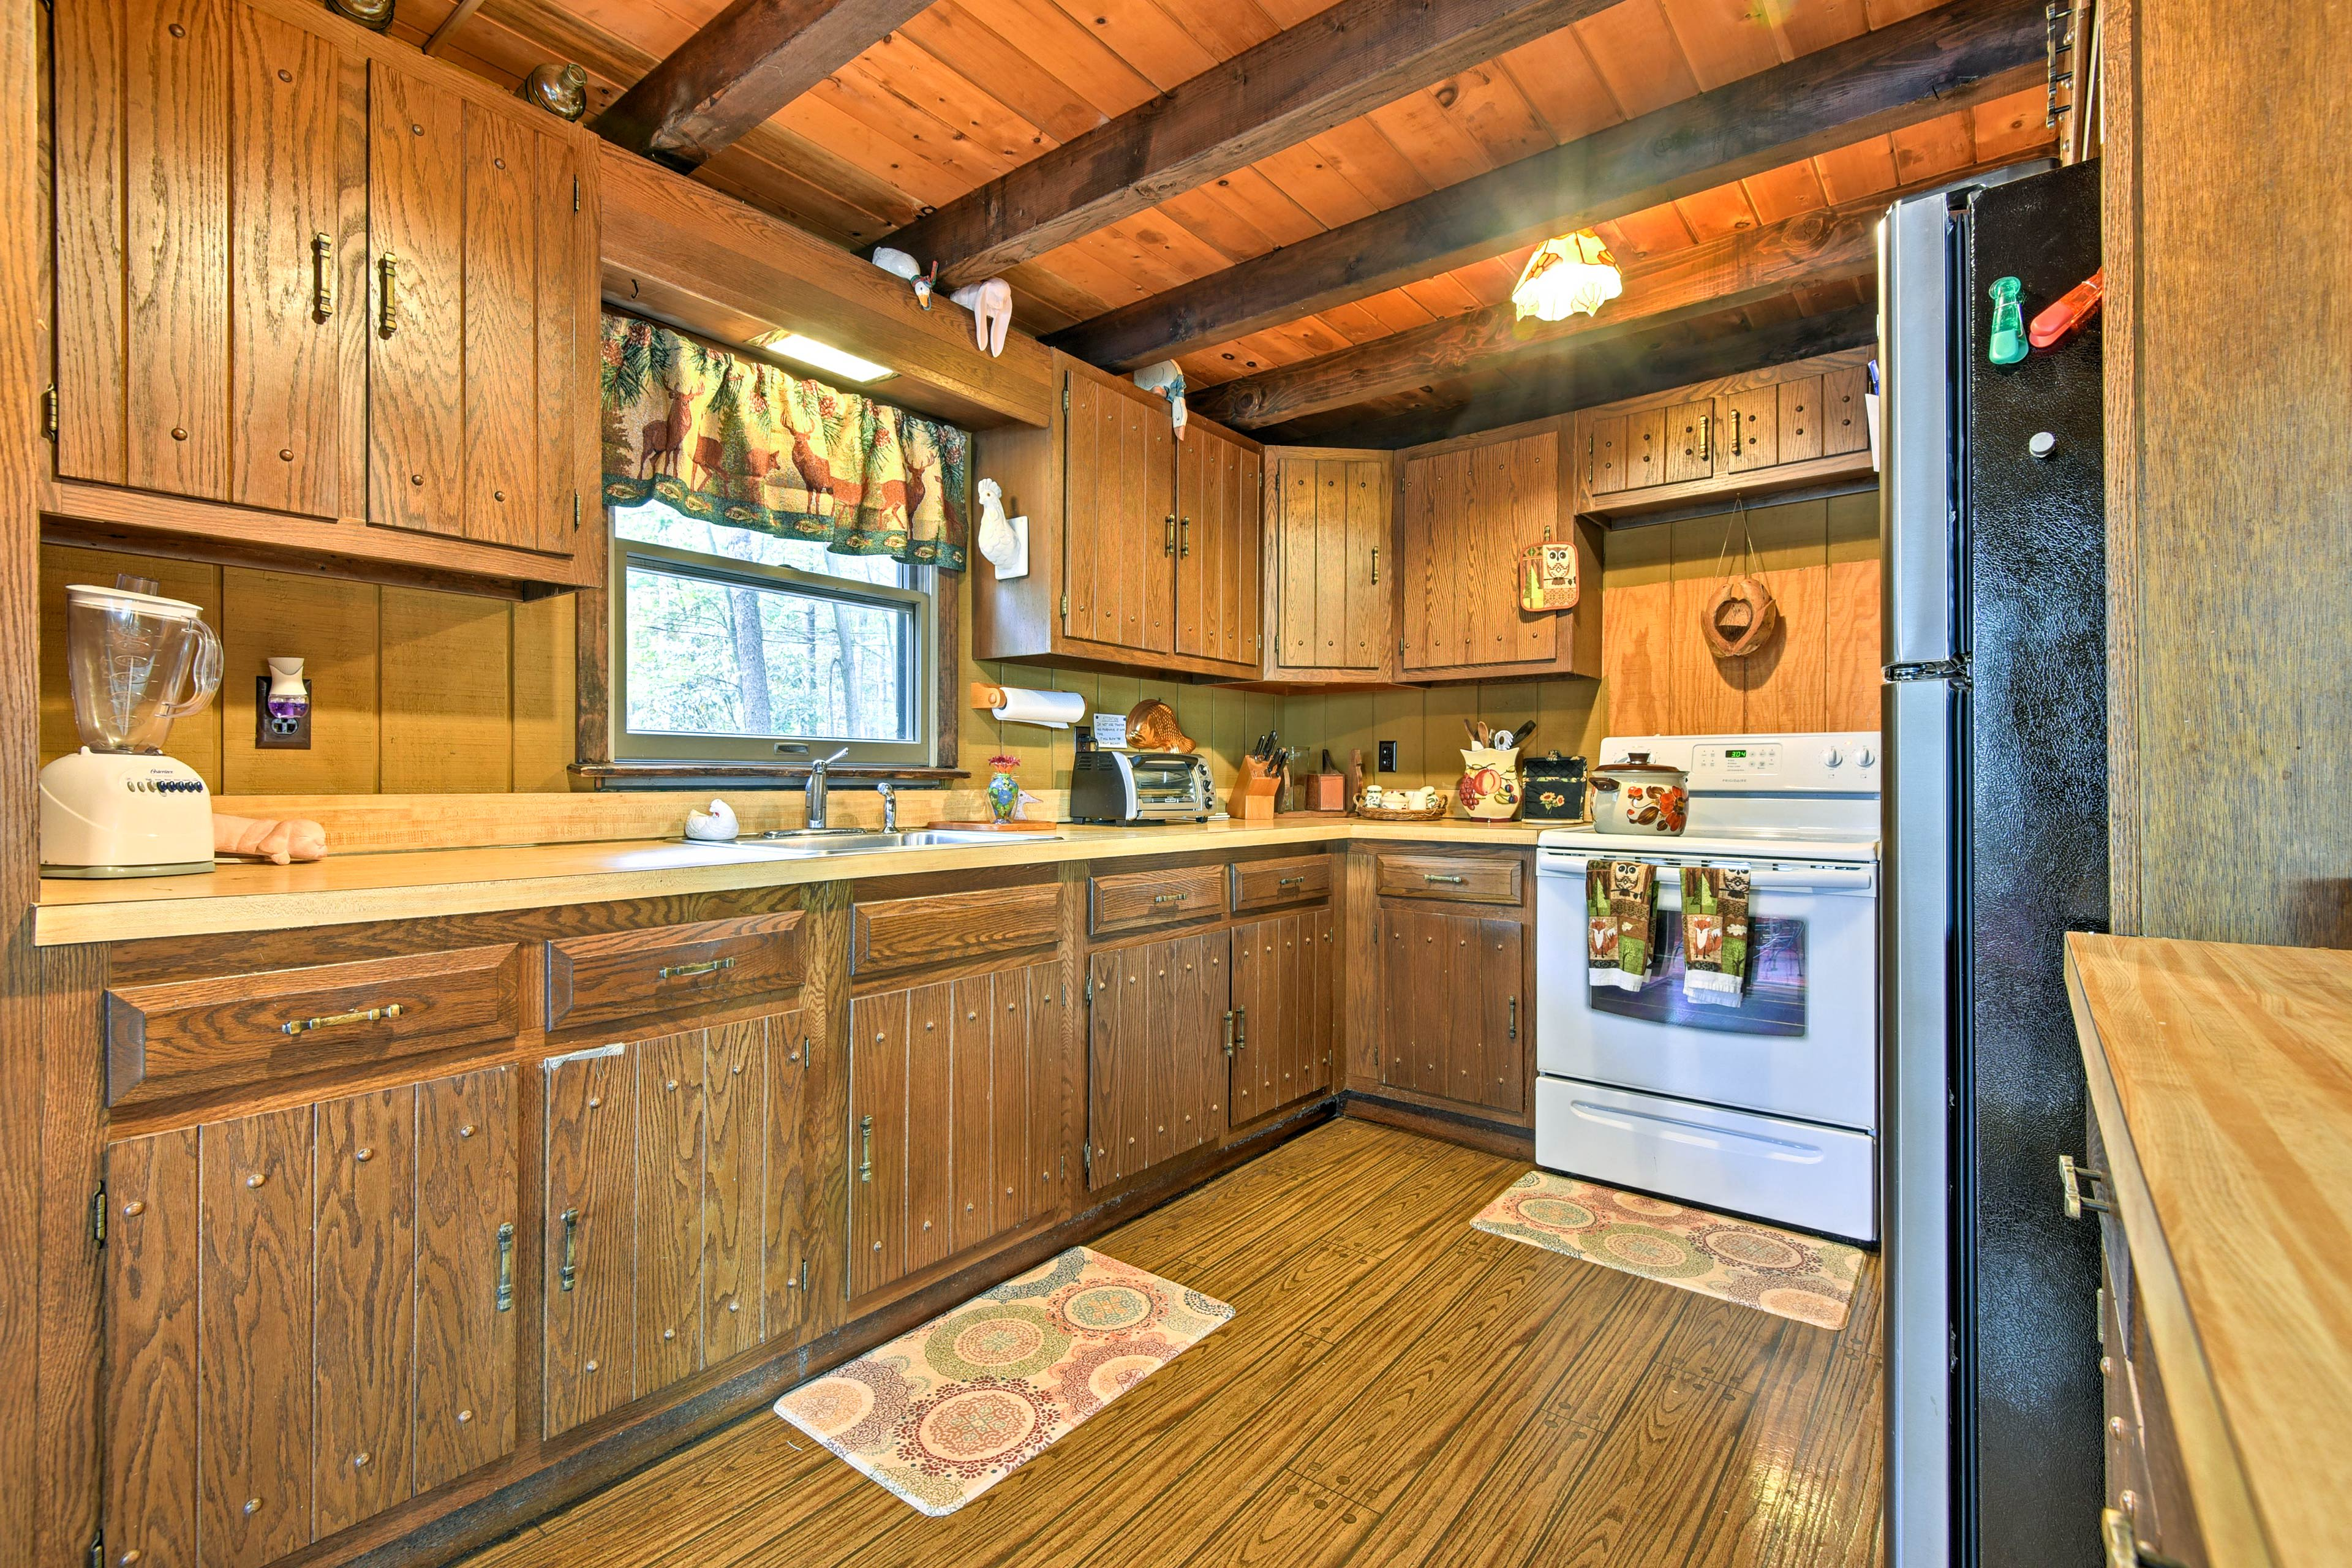 The well-equipped kitchen has everything you need.